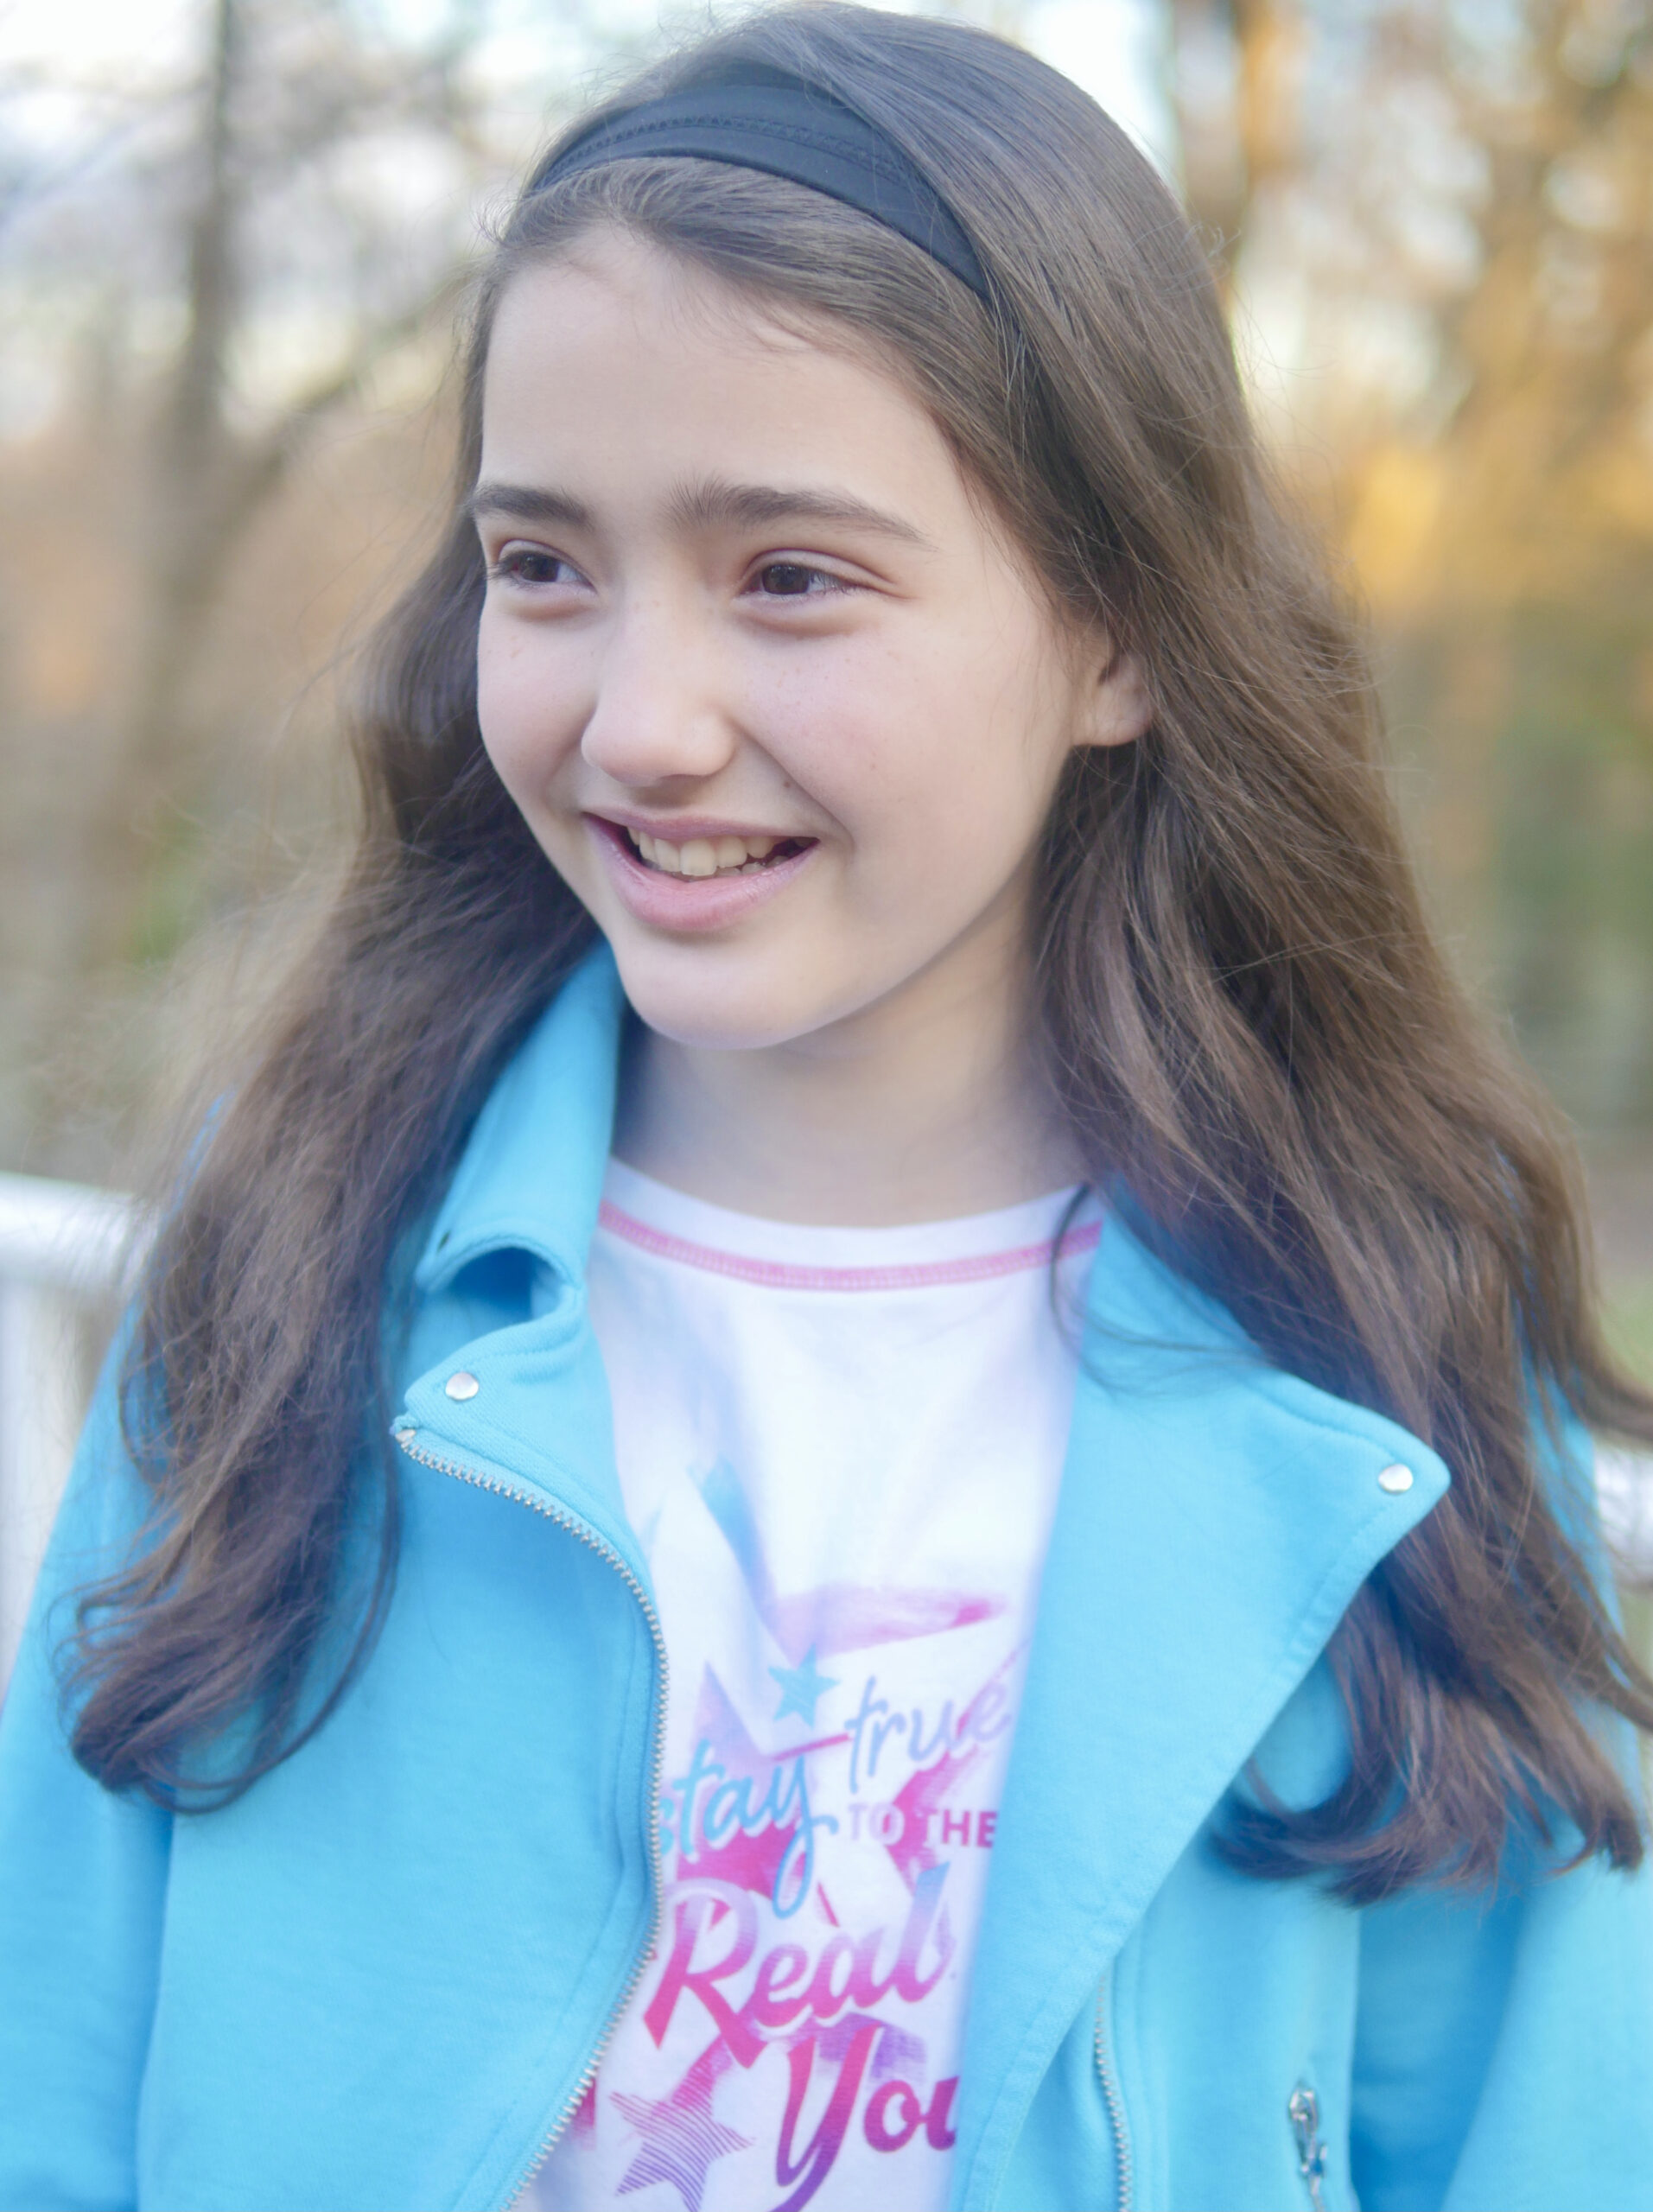 American Girl Truly Me Moto Jacket and Stay True to the Real You Tee - American Girl Outfits for Tweens & Children - Enjoying Family Life